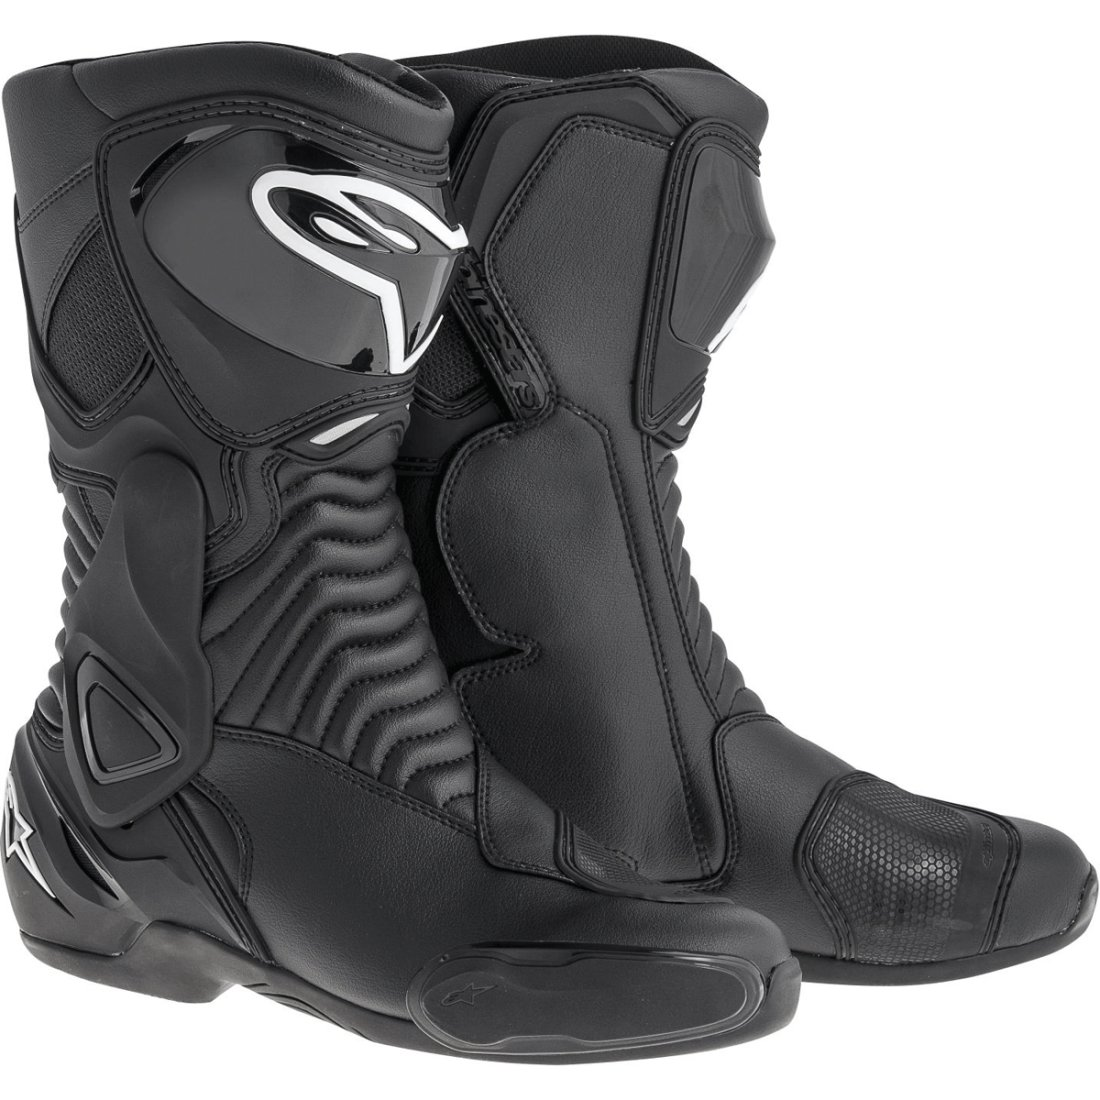 Bottes ALPINESTARS S,MX 6 Black